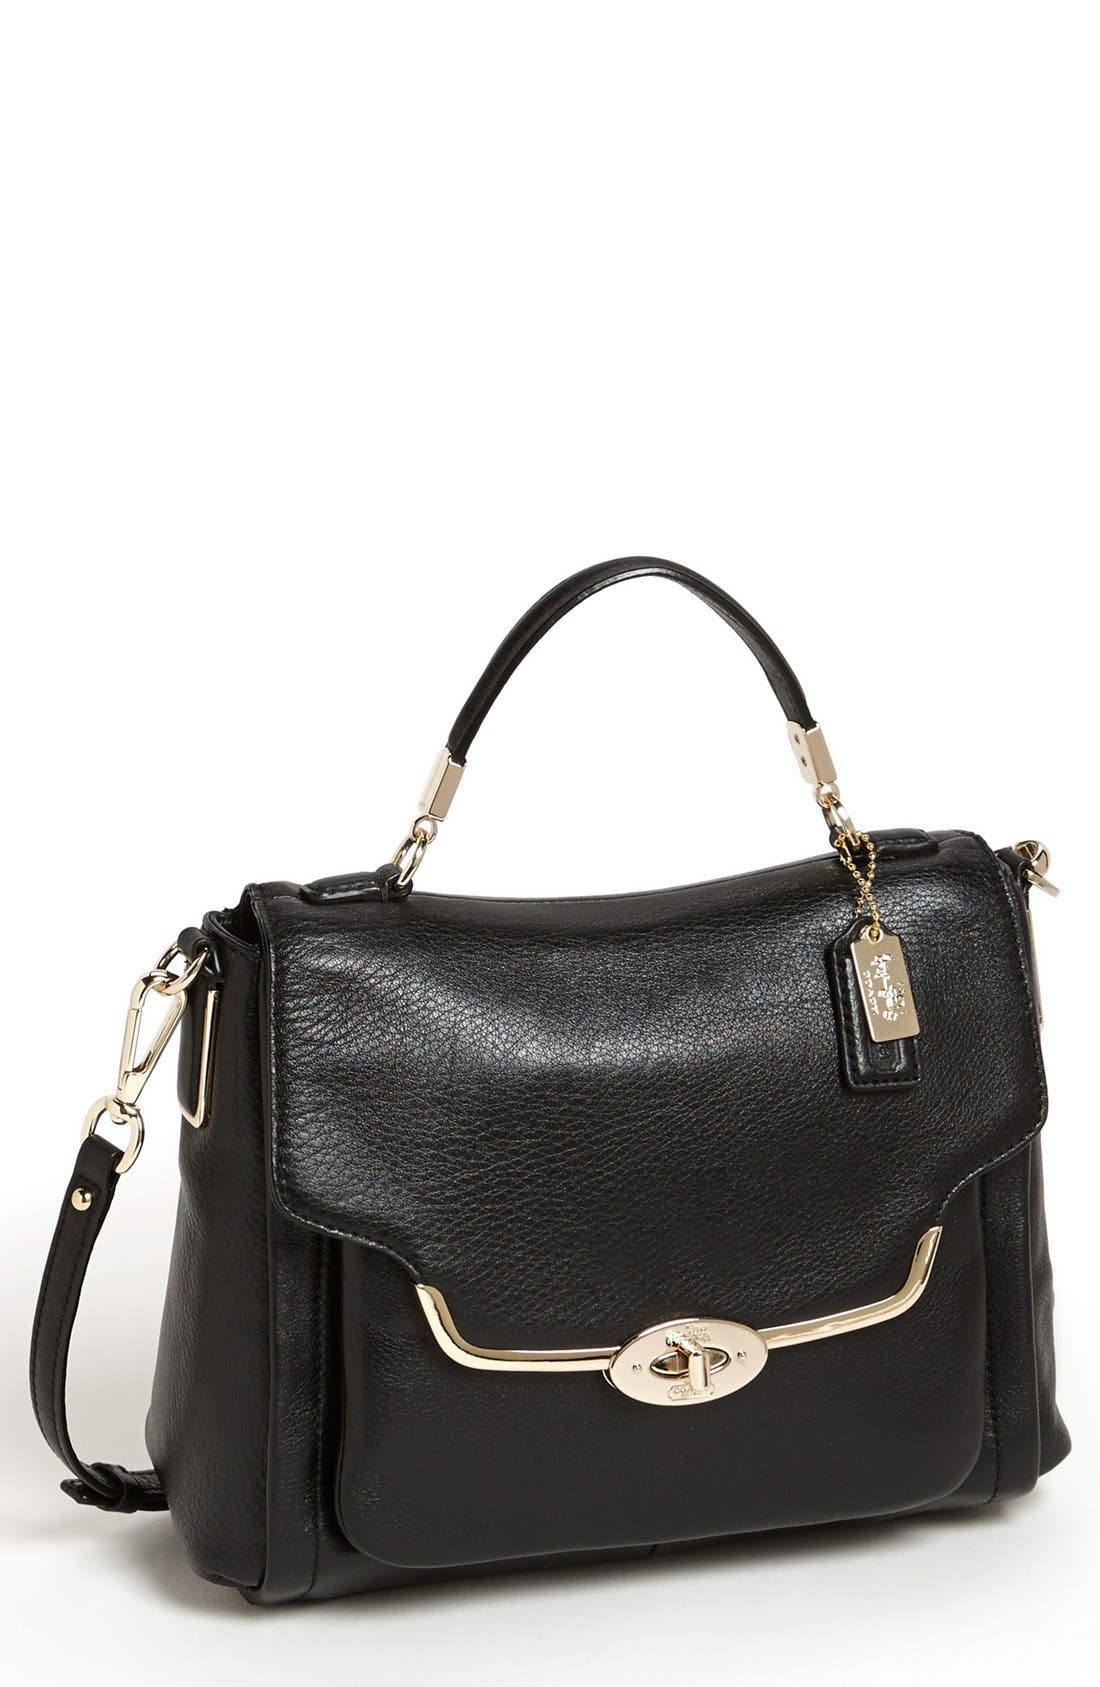 'Madison - Sadie Small' Leather Satchel,                             Main thumbnail 1, color,                             019